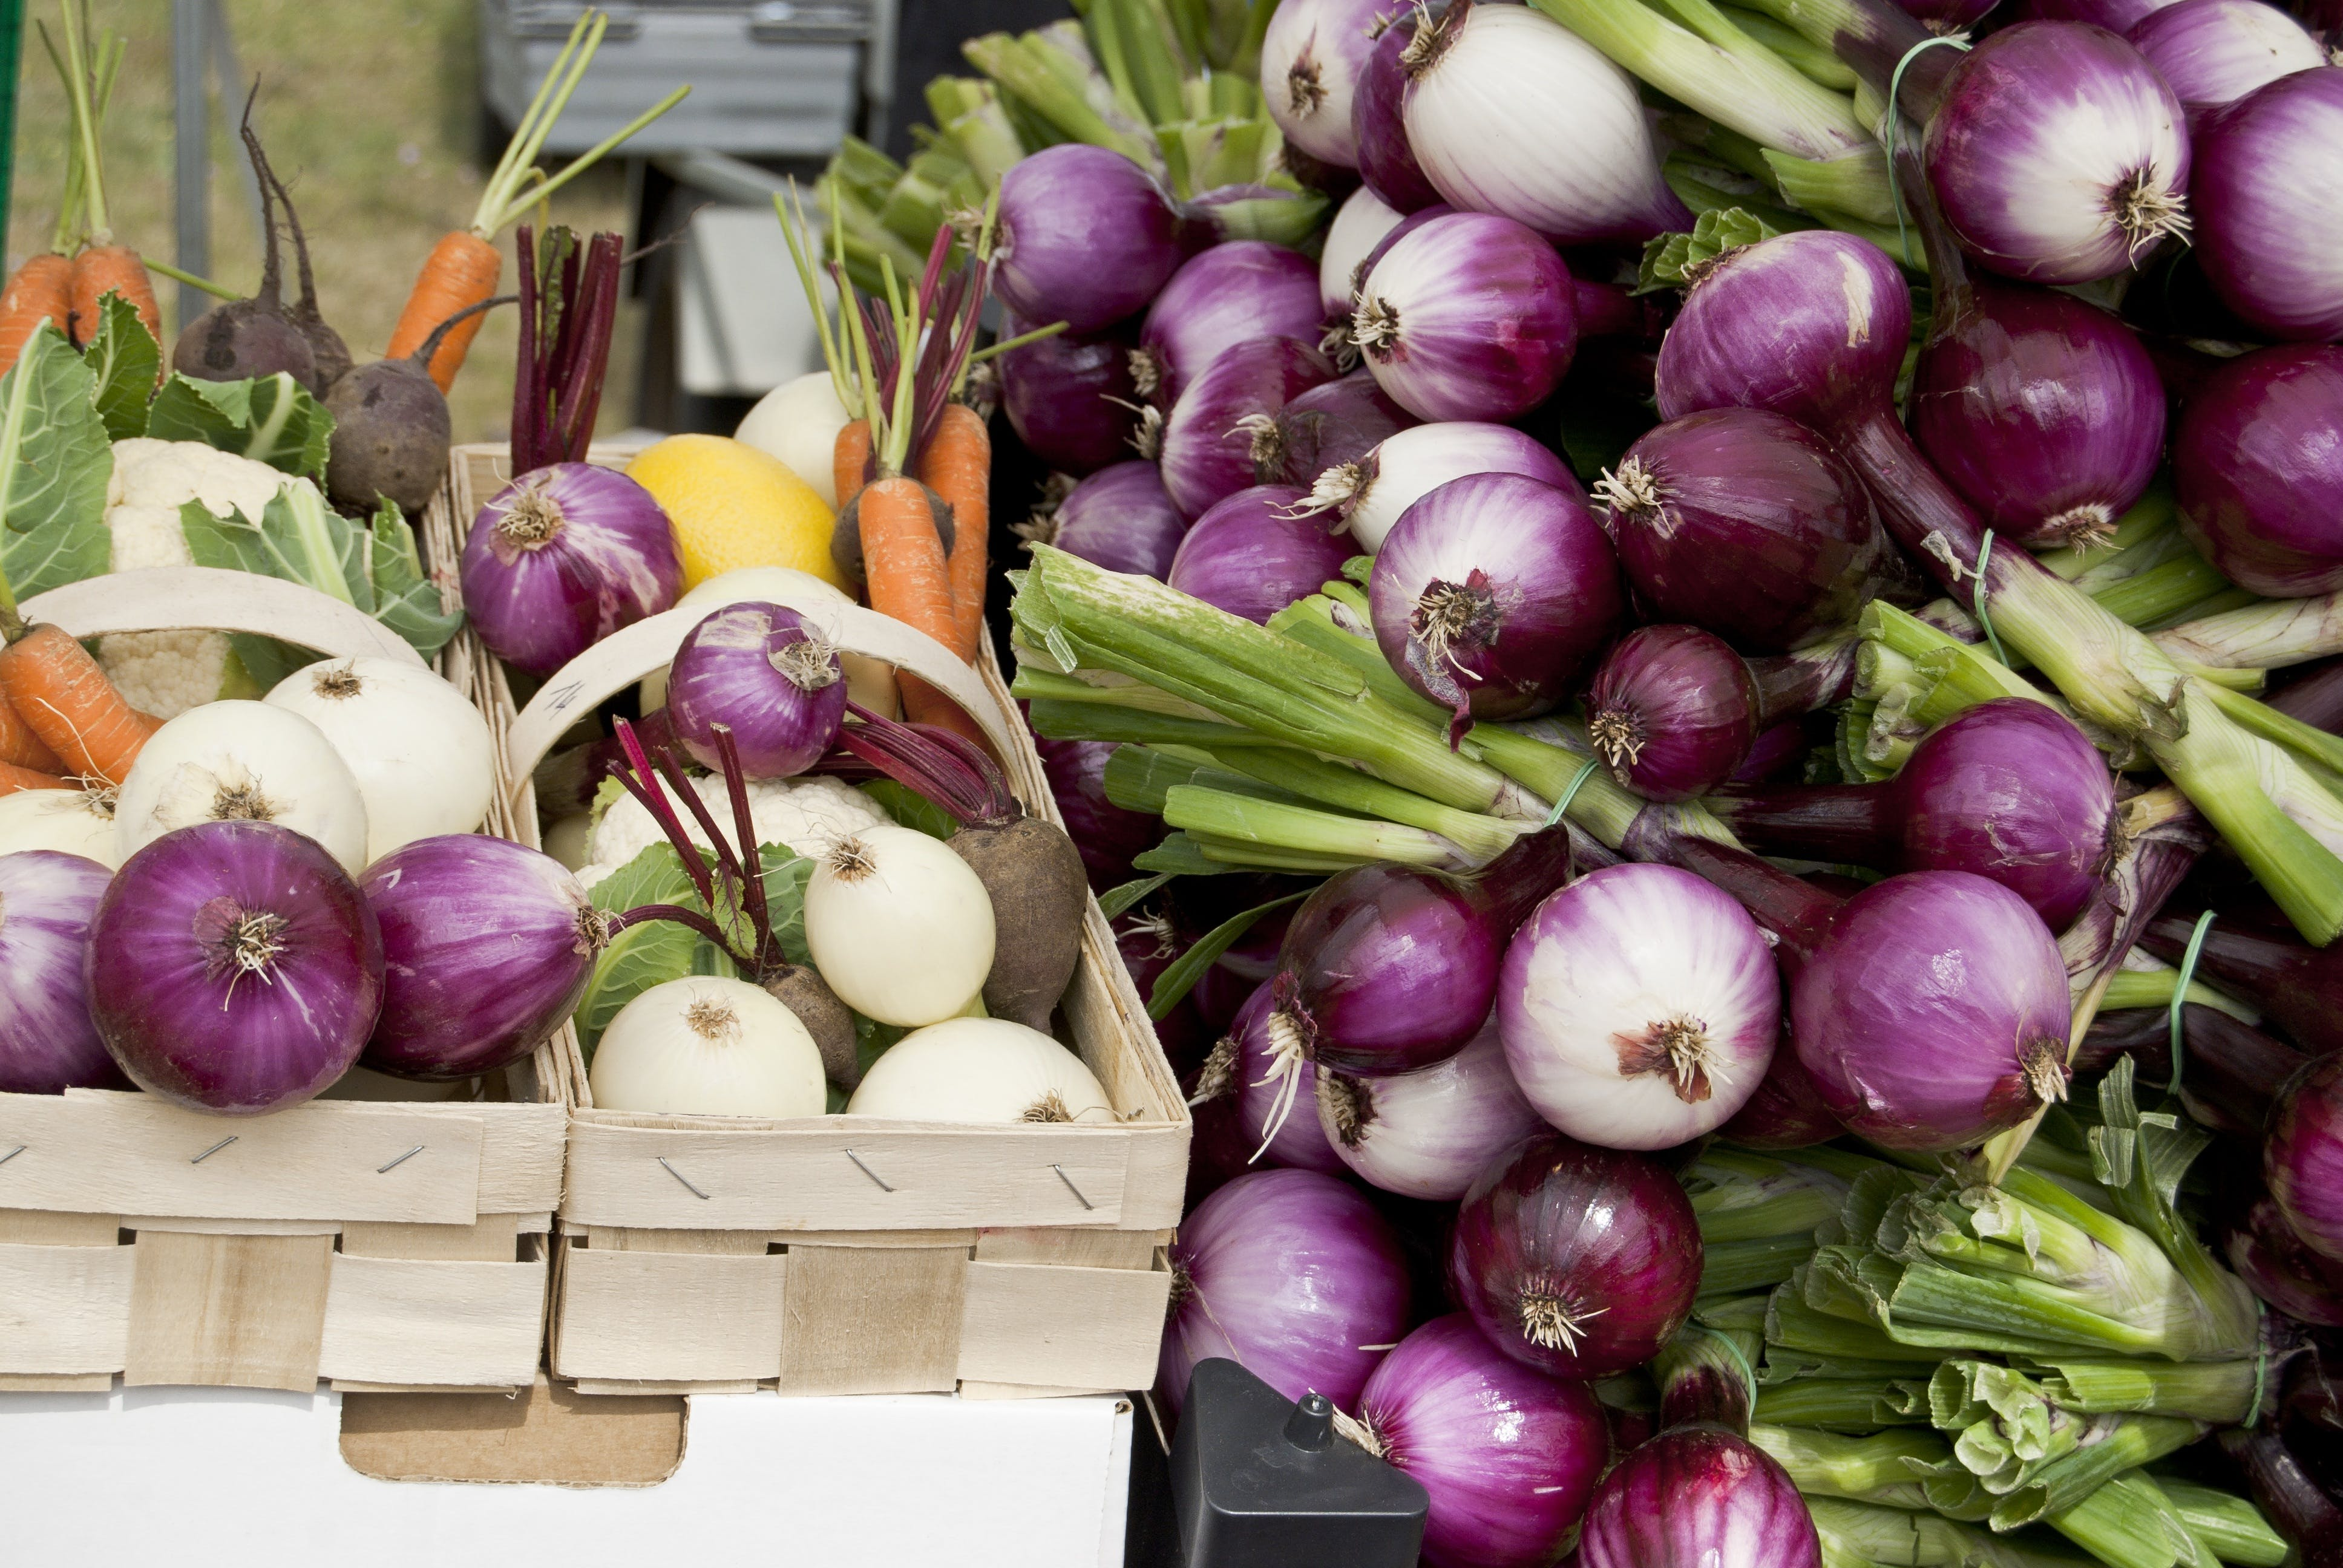 Free stock photo of vegetables, vegetarian, onion, carrots